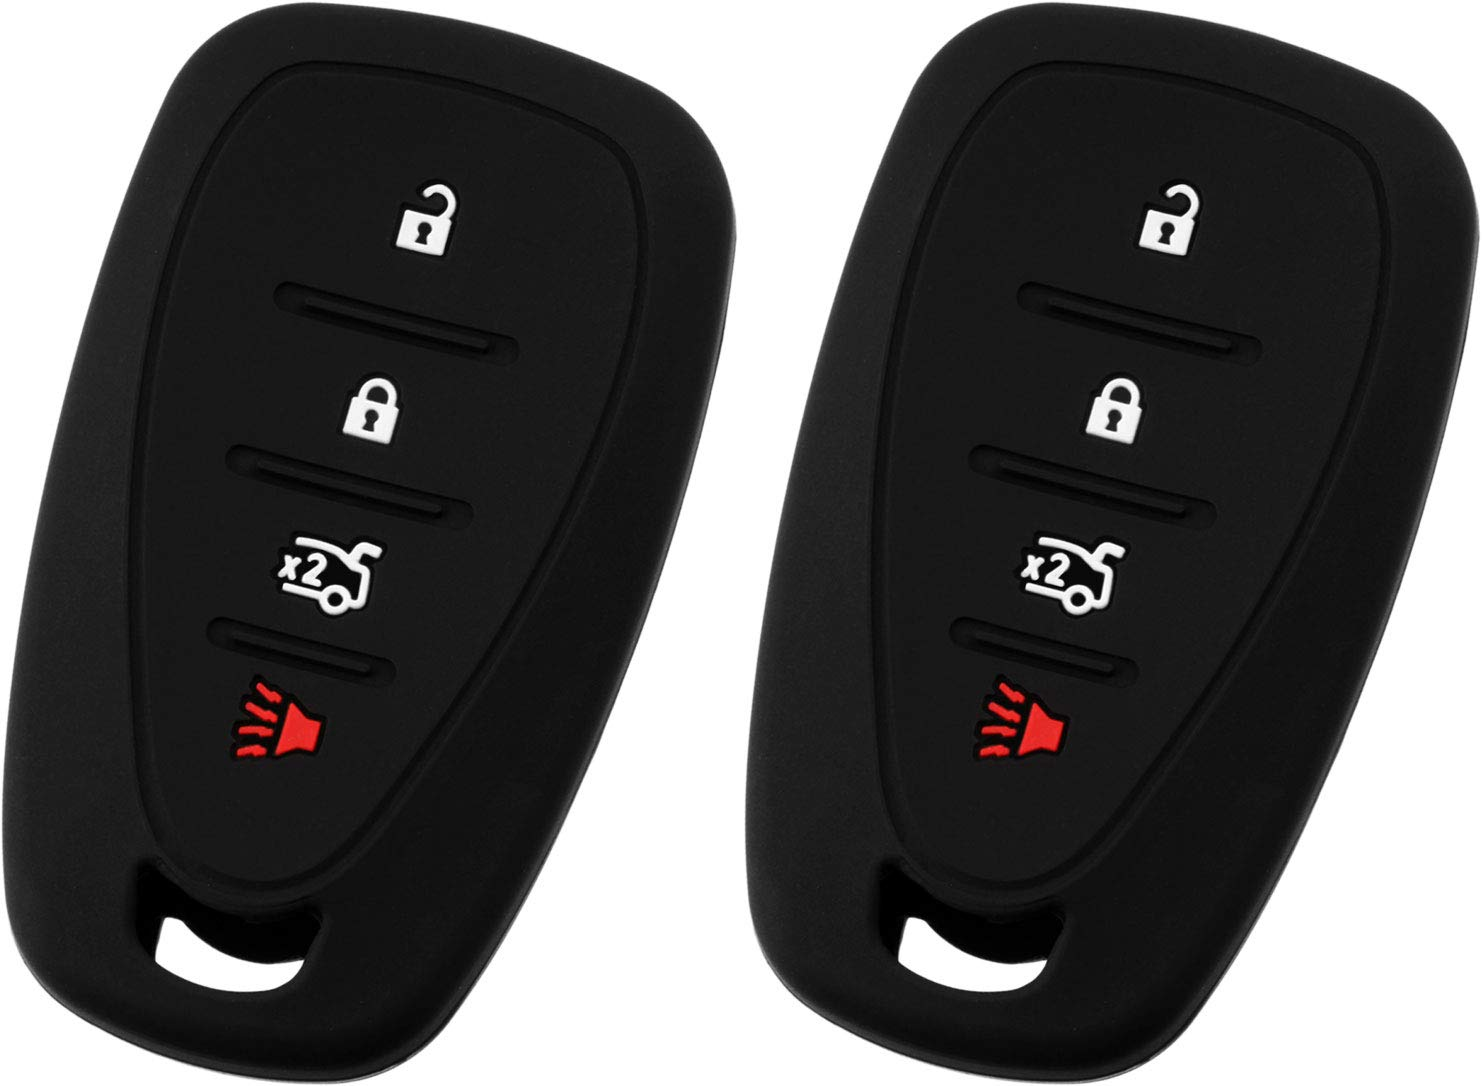 Pack of 2 KeyGuardz Keyless Entry Remote Car Smart Key Fob Outer Shell Cover Soft Rubber Protective Case for Chevy Volt Bolt Sonic Spark HYQ4EA KeylessOption